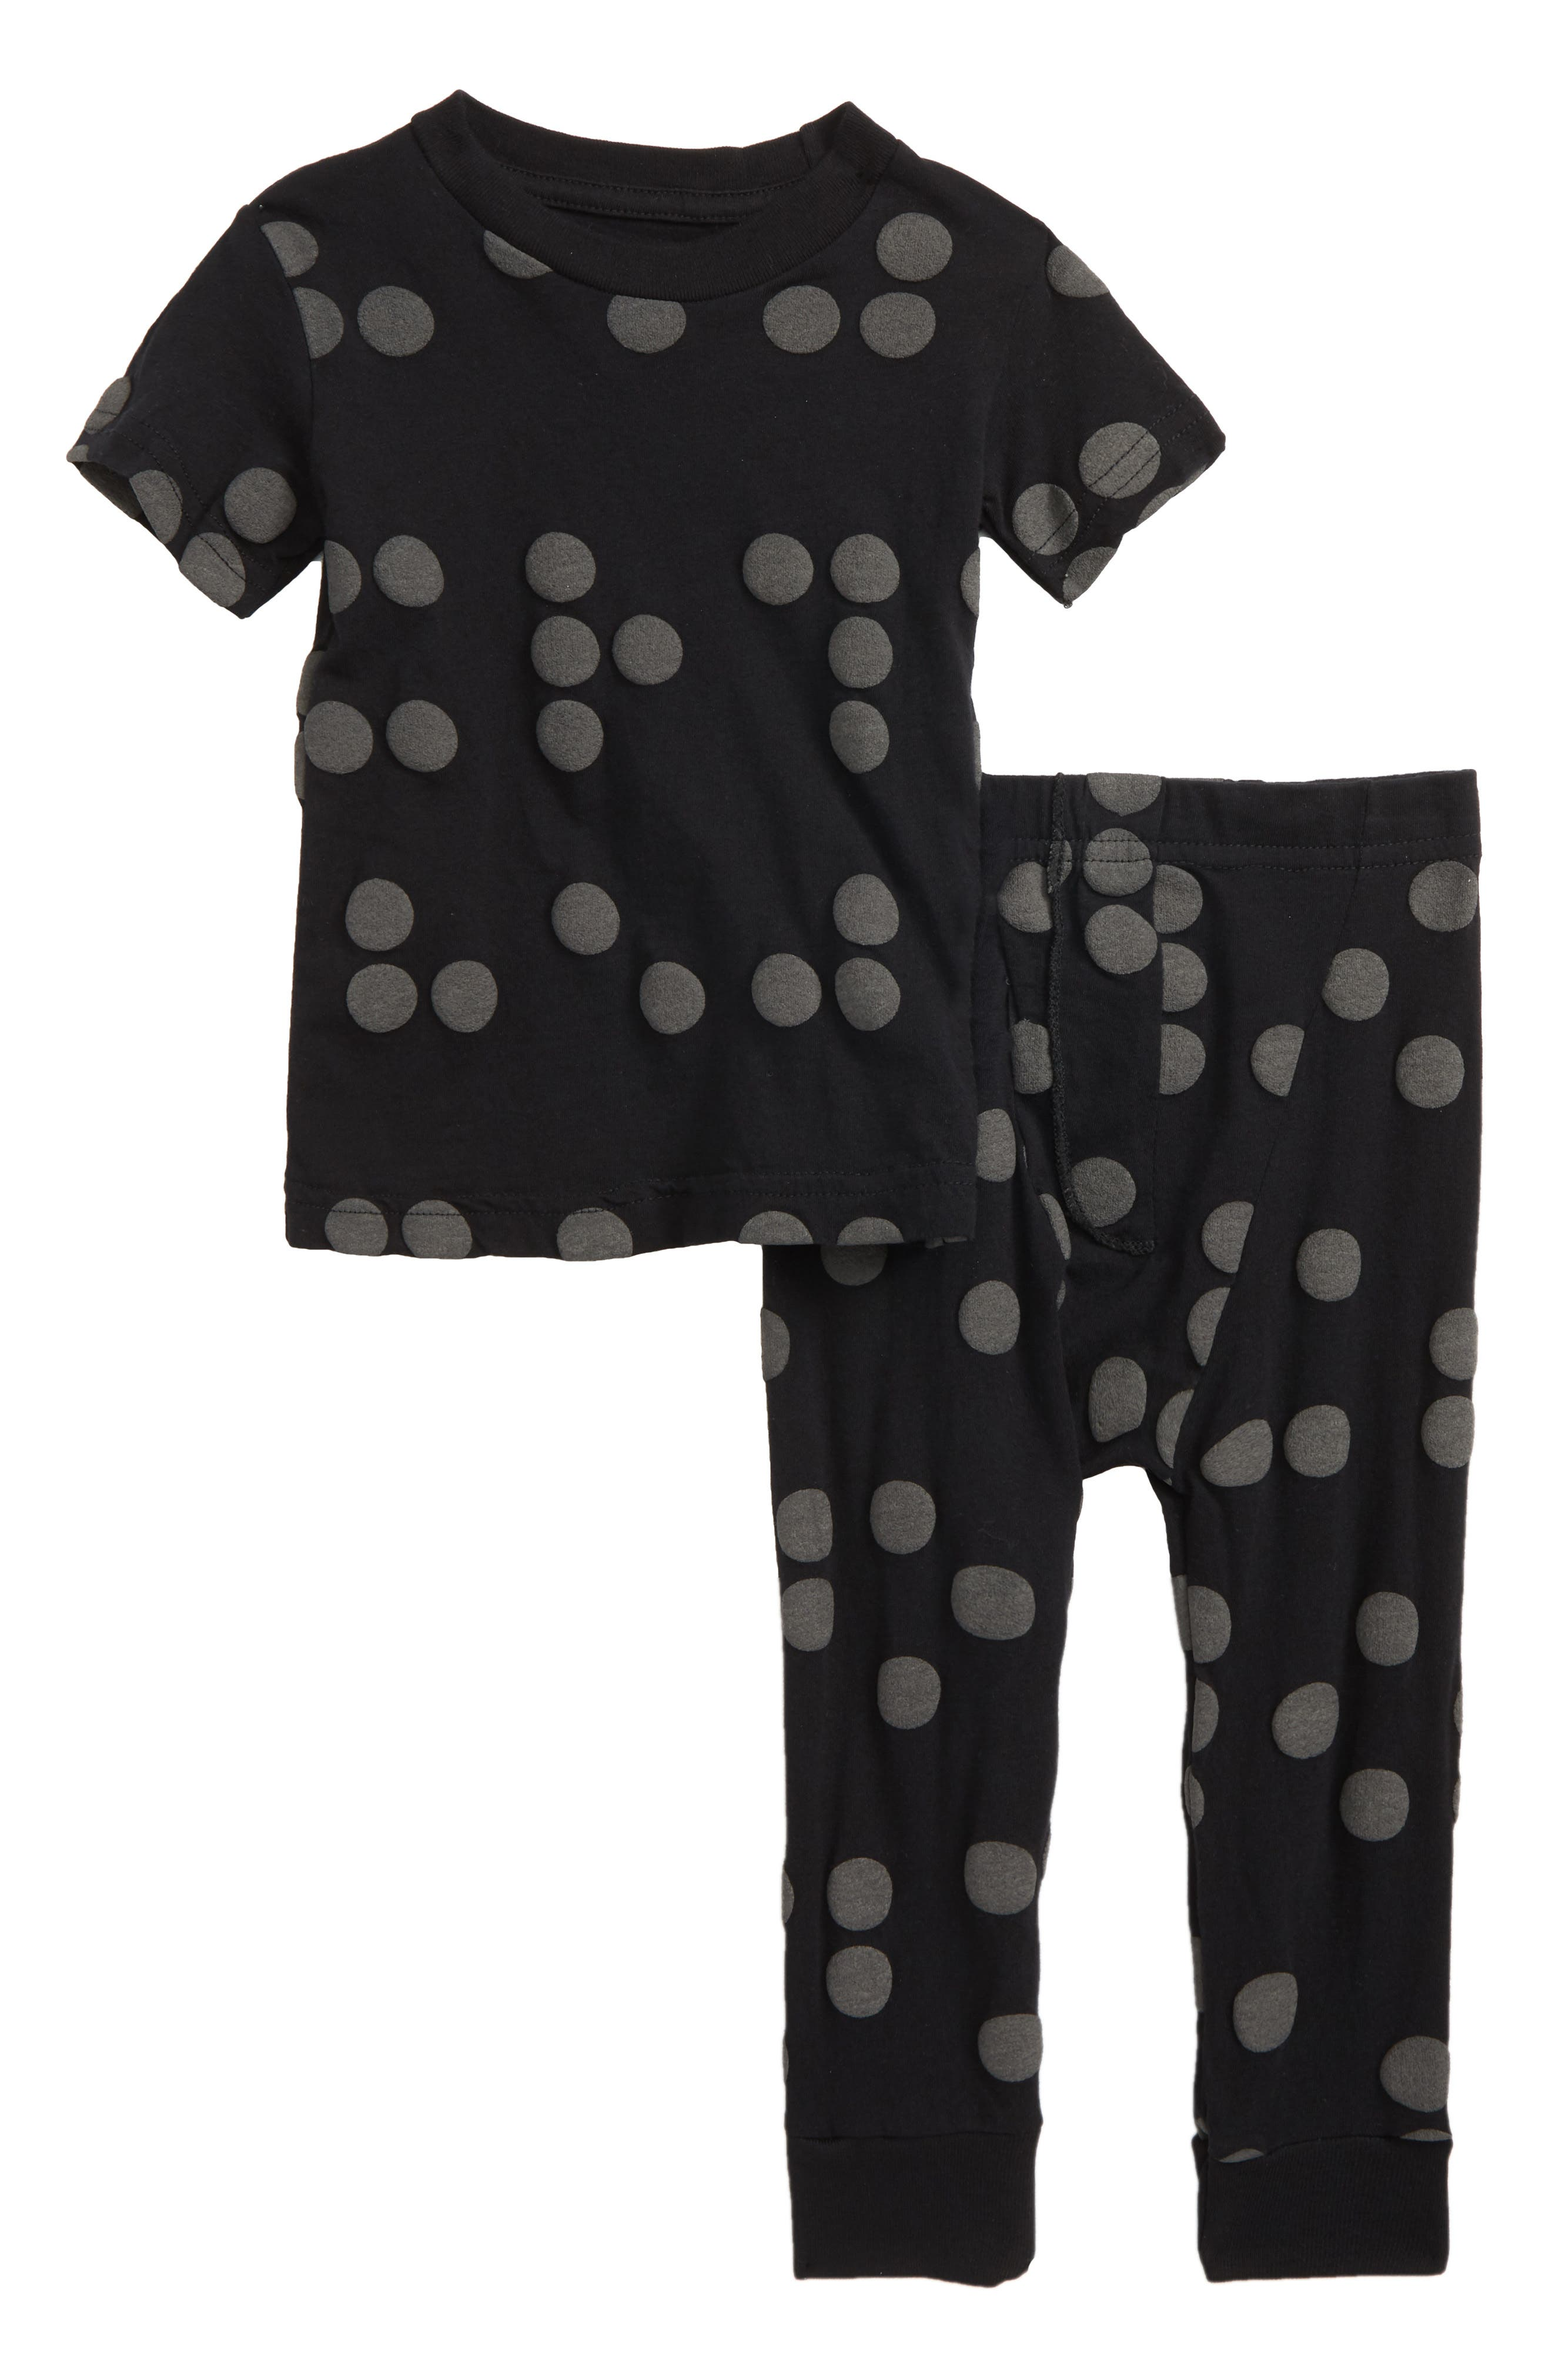 Nununu Braille Shirt & Pants Set (Baby)